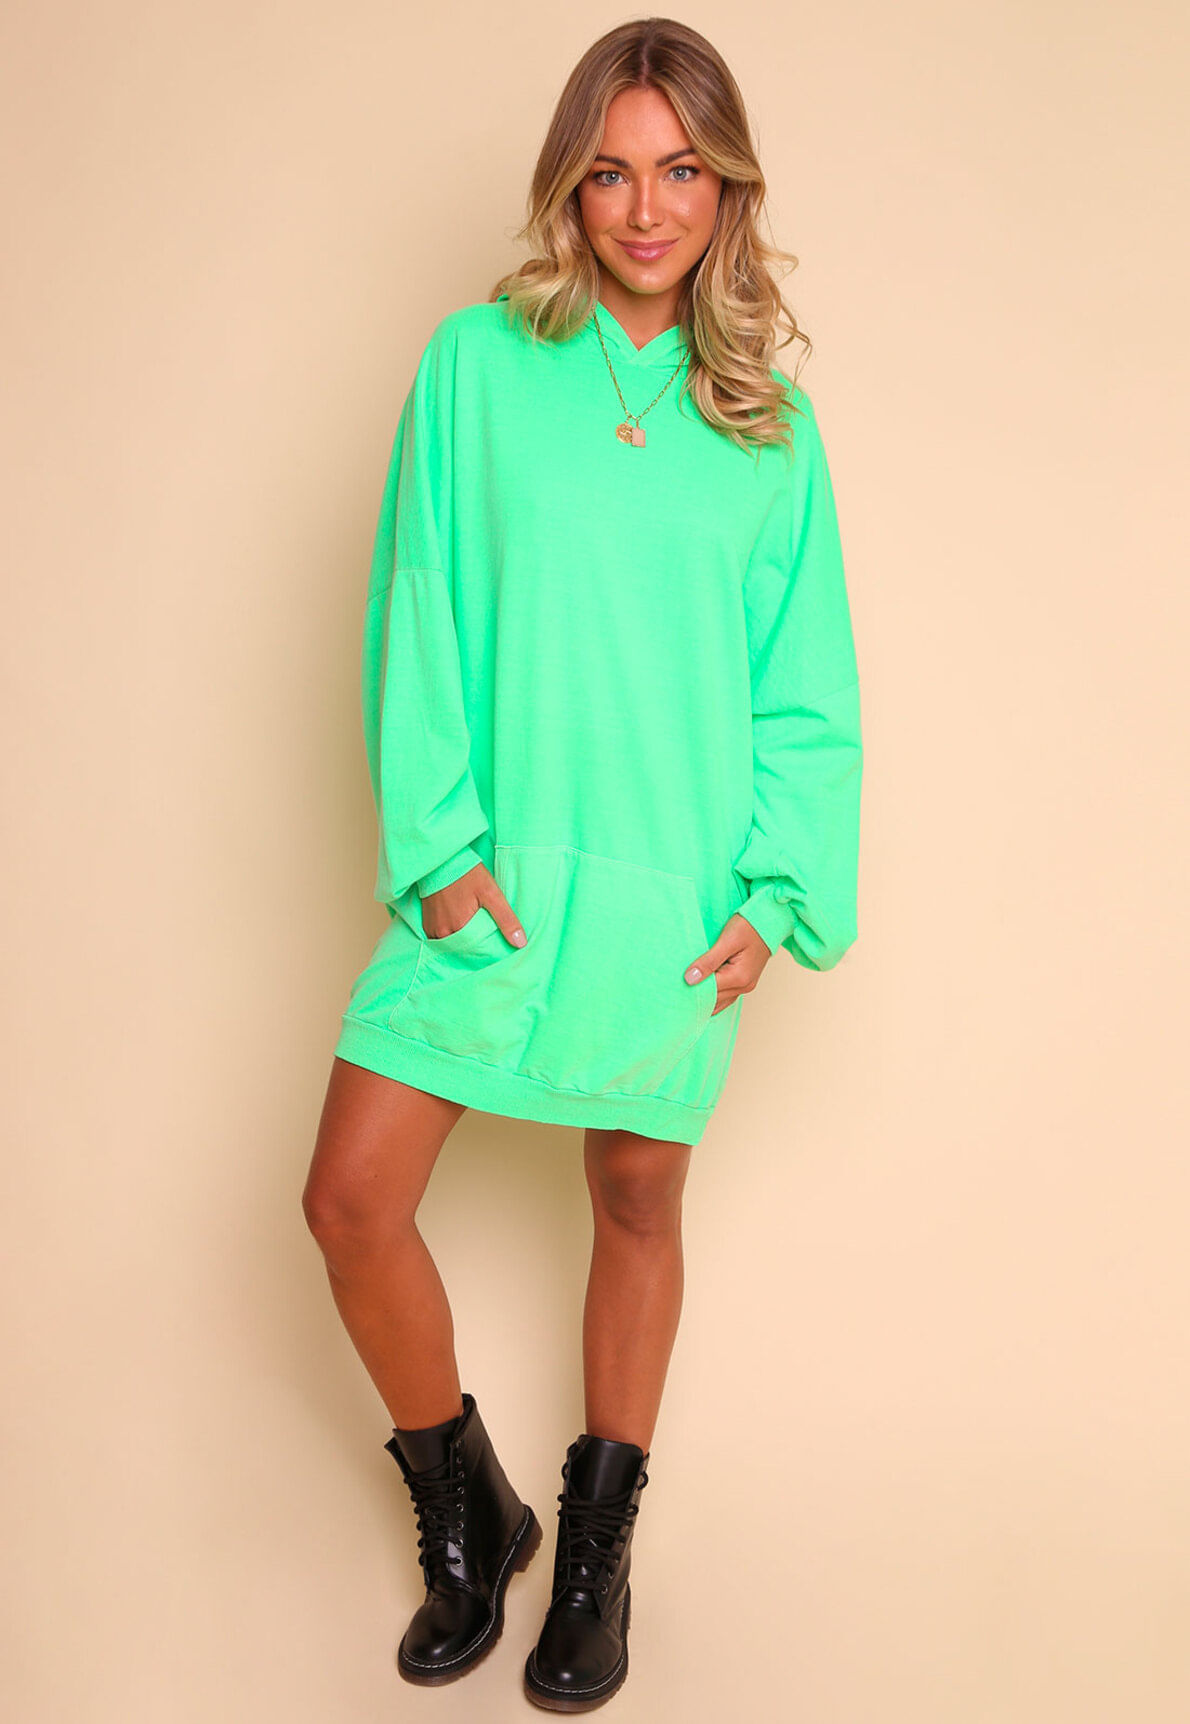 30442-moletom-oversized-neon-take-me-out-mundo-lolita-02